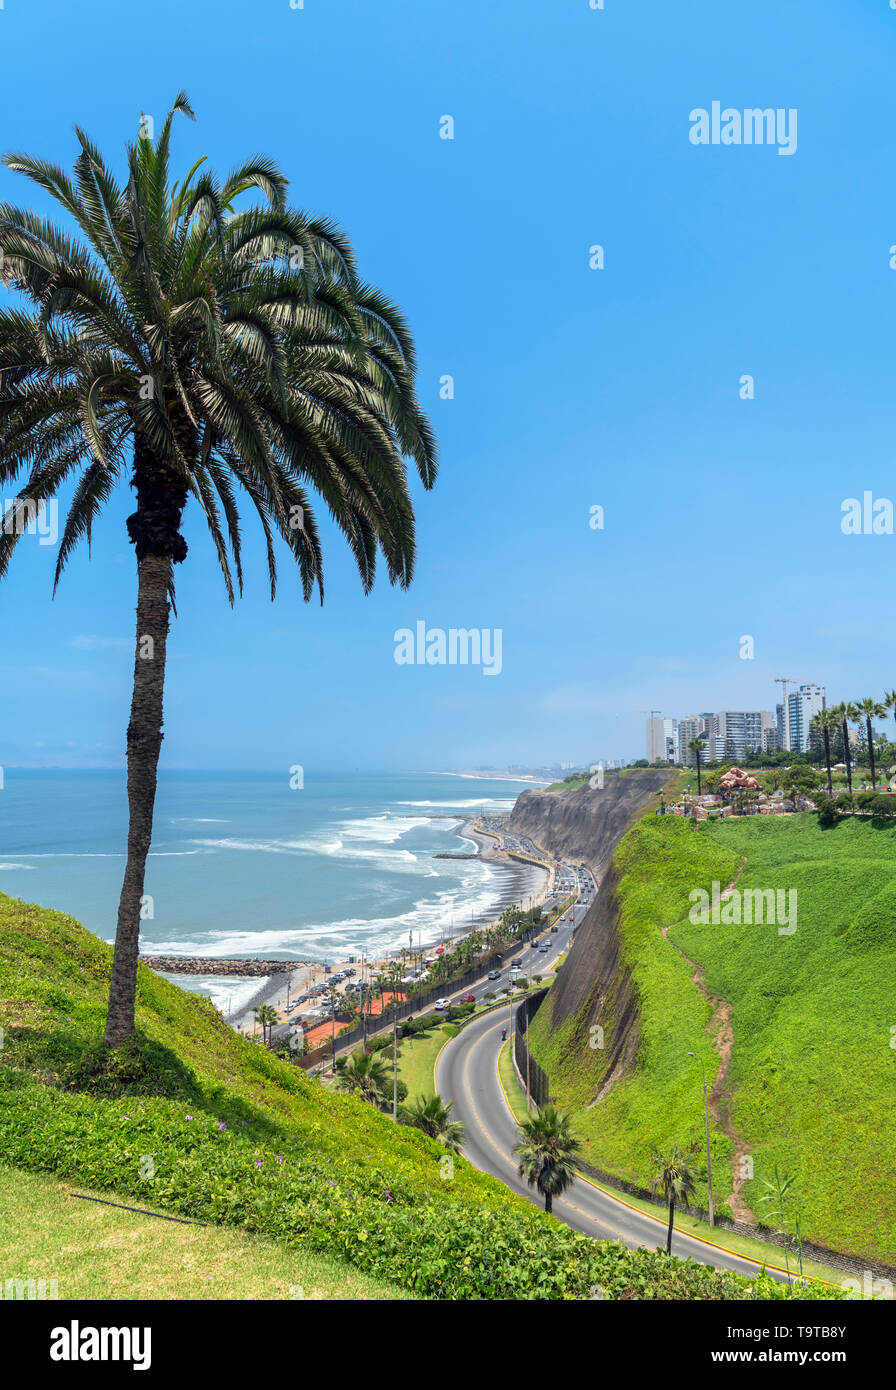 Lima, Miraflores. View of Miraflores from Parque del Amor on the clifftops overlooking the Pacific Ocean, Lima, Peru, South America - Stock Image